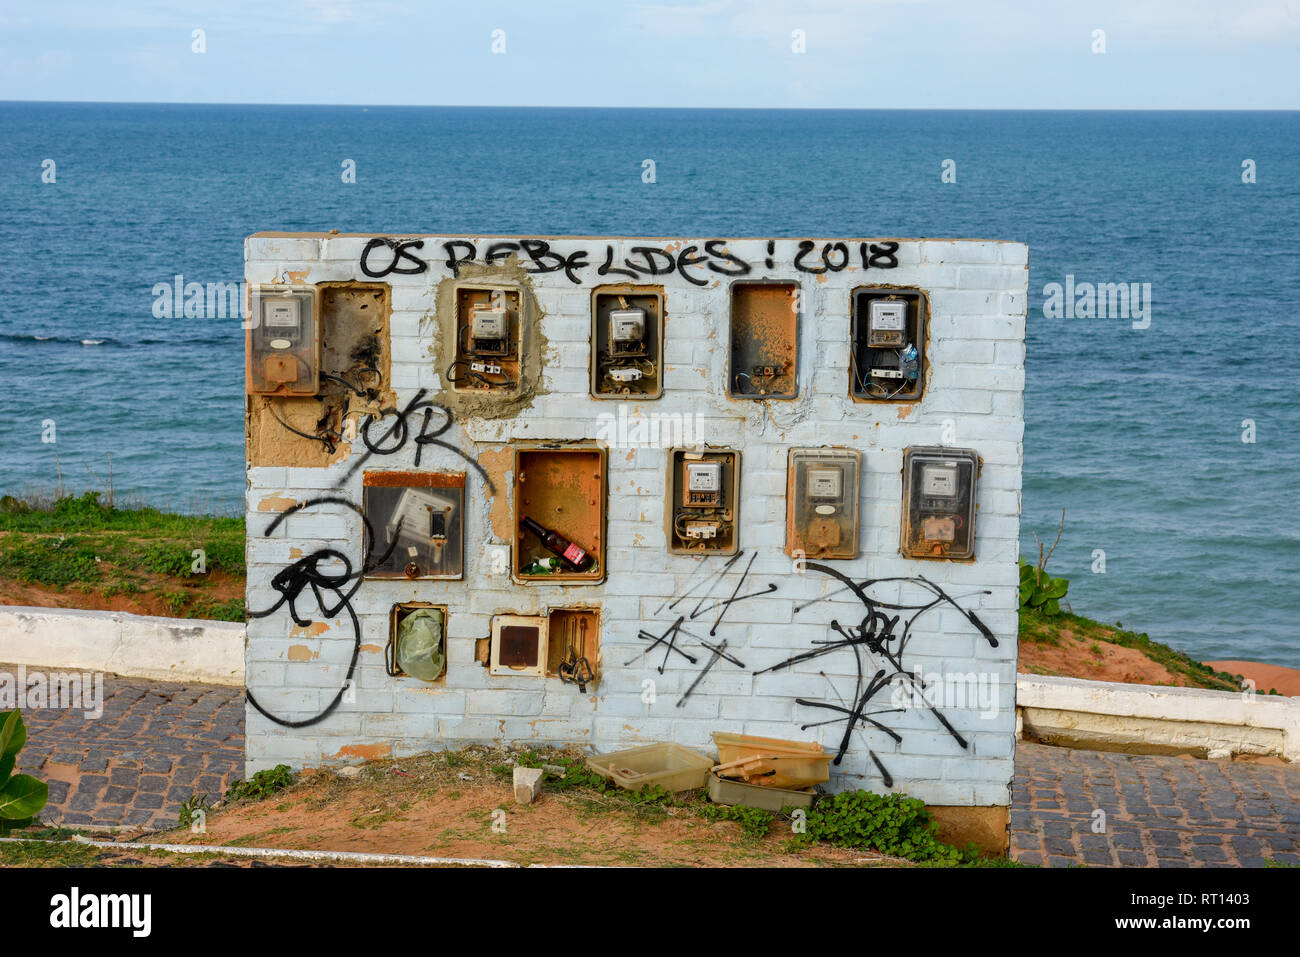 Old and broken electric meter boxes on a wall in front of the sea on Brazil Stock Photo